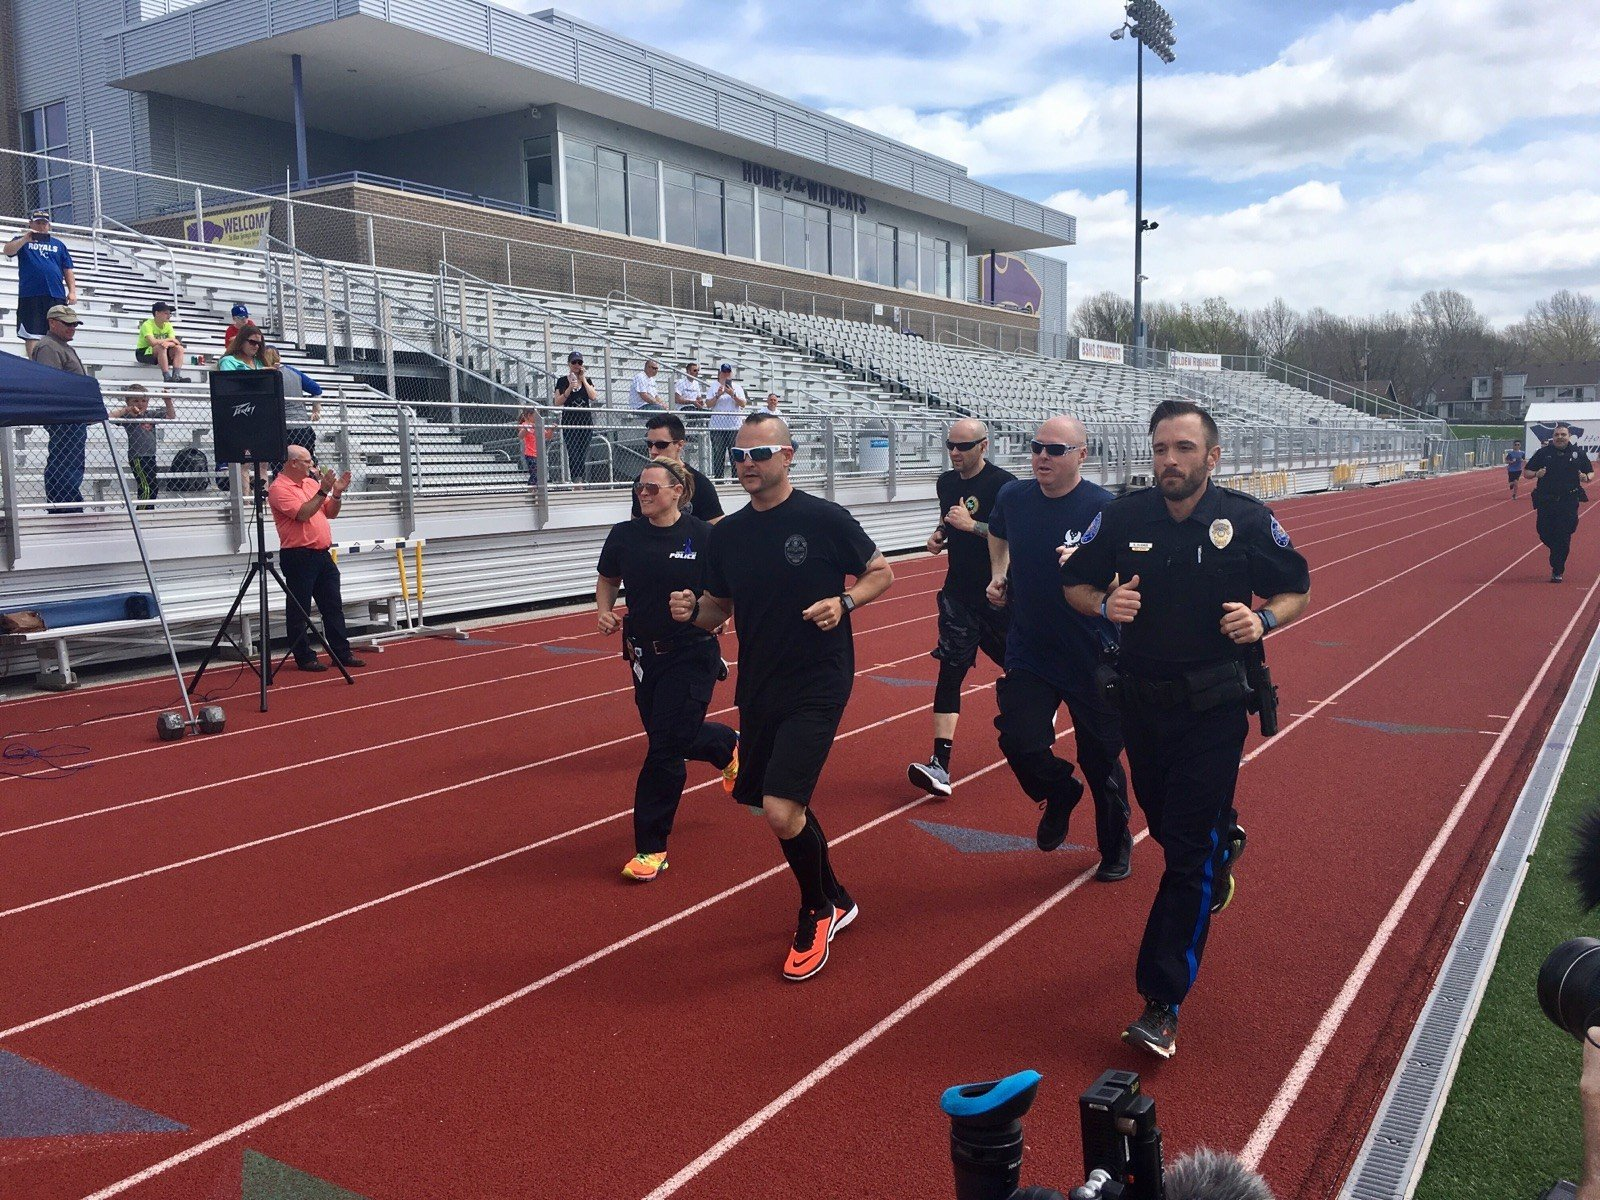 Hughes decided to run a marathon, wearing his full police uniform. Throughout the day, others joined in to walk or run a 5K. (KCTV)